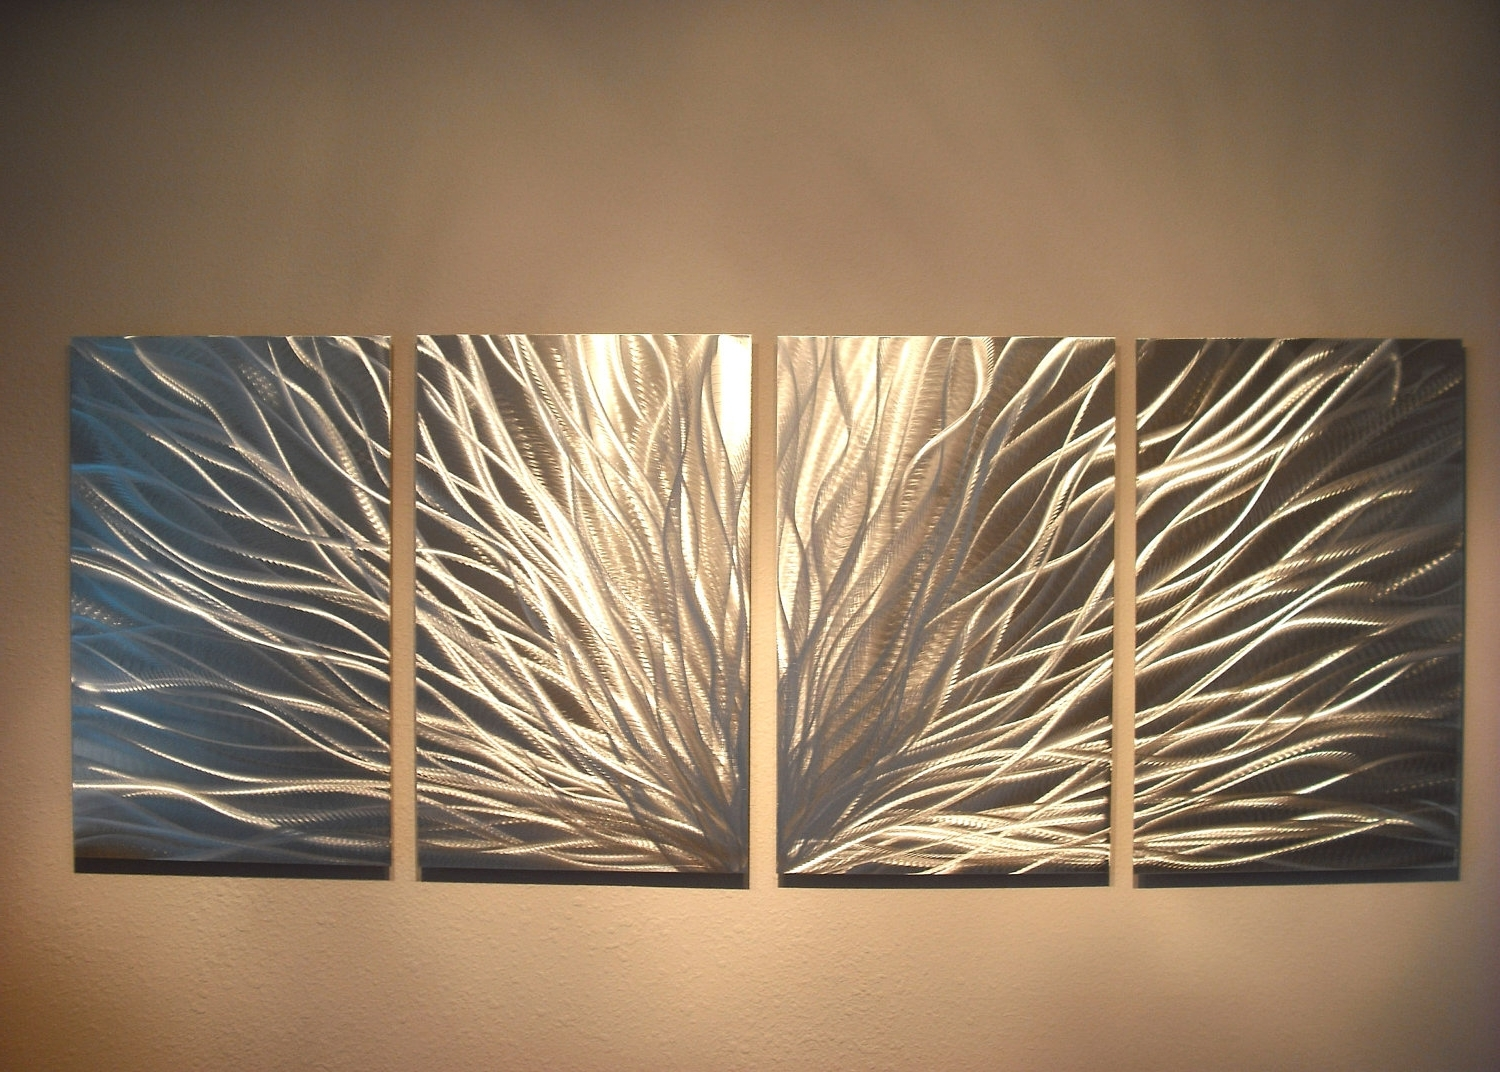 Famous Home Decor: Perfect Abstract Metal Wall Art With Radiance Art Intended For Modern Wall Art Uk (View 2 of 15)